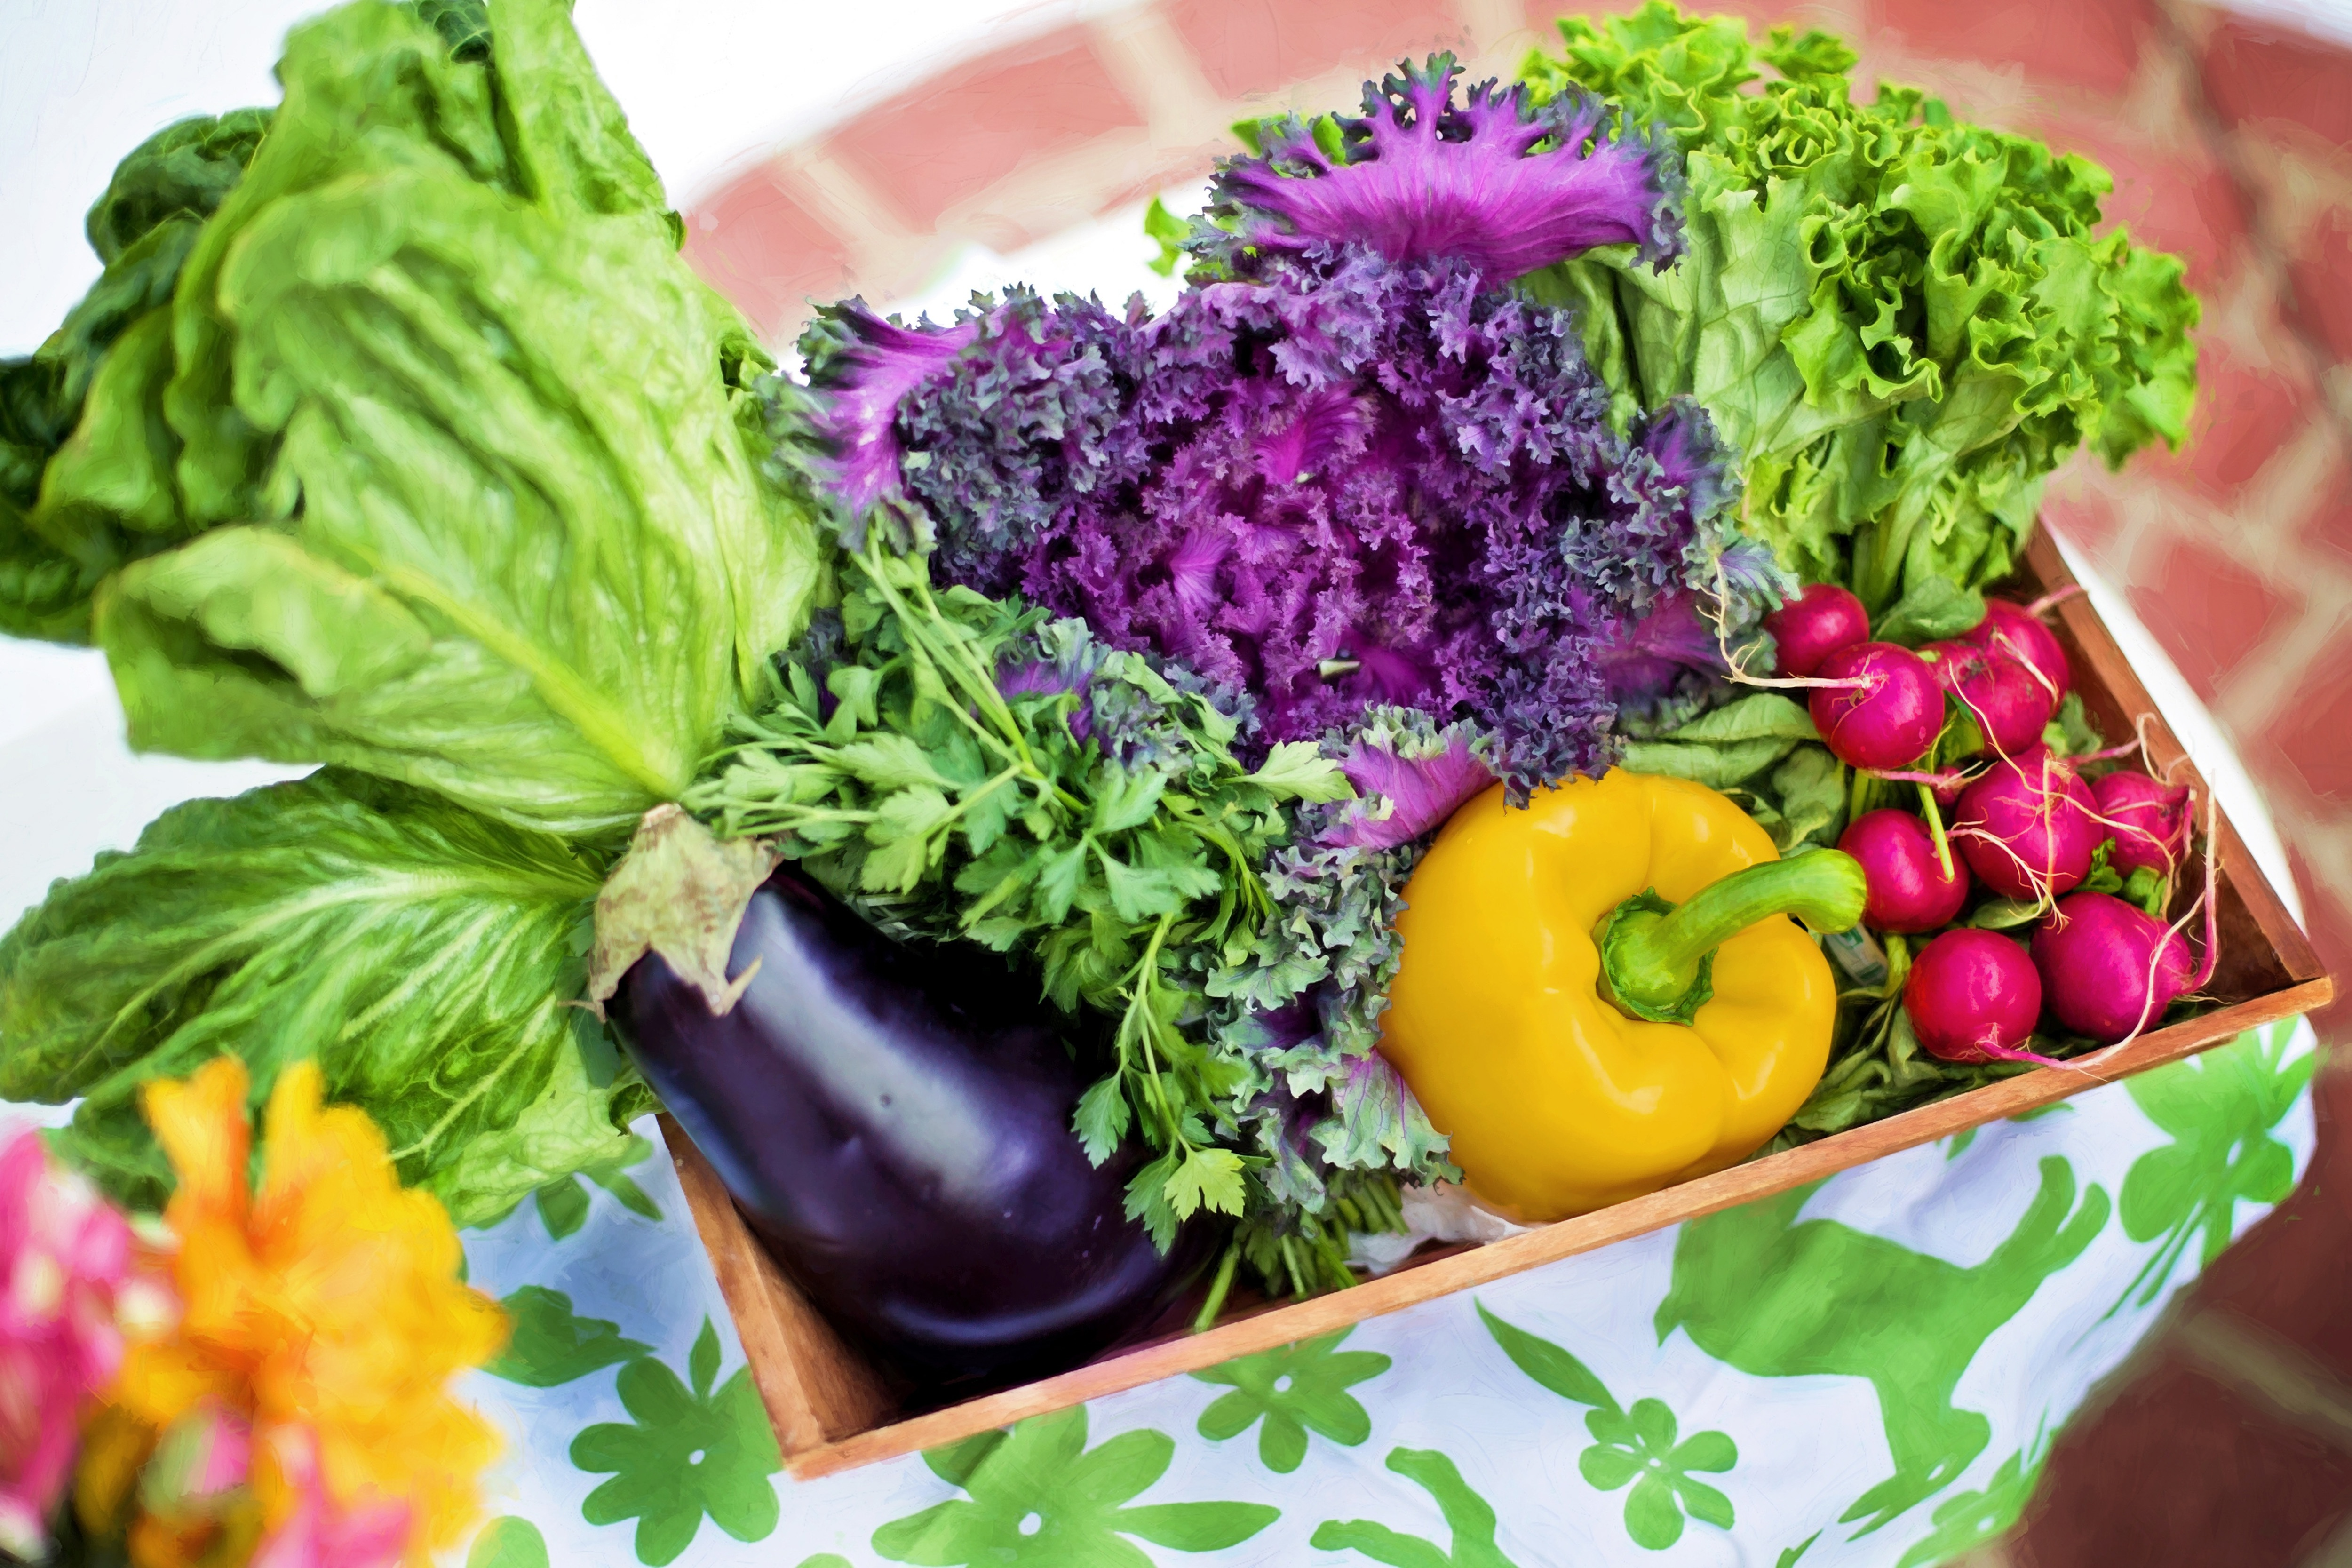 Taiwan and Australia Agree on Mutual Acceptance of Organic Food Certification